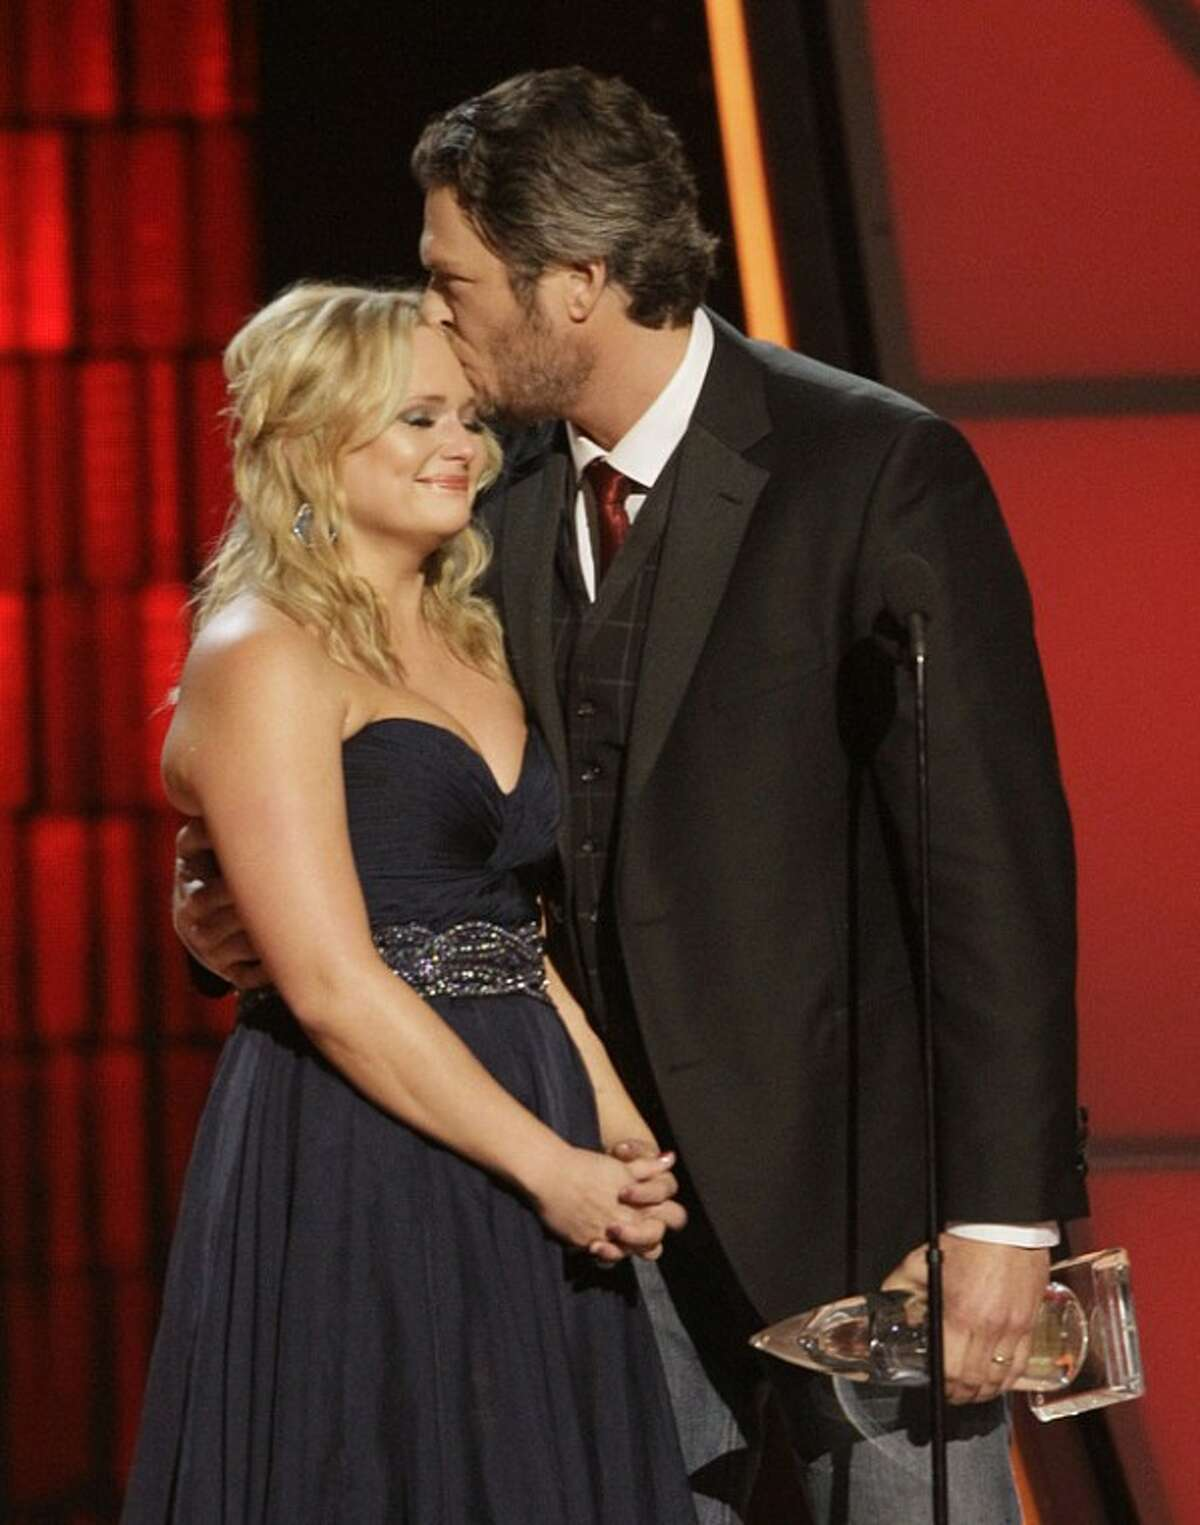 """Miranda Lambert, left, and Blake Shelton accept song of the year award for """"Over You"""" at the 46th Annual Country Music Awards at the Bridgestone Arena on Thursday, Nov. 1, 2012, in Nashville, Tenn. Lambert got emotional as Shelton talked about the loss of his brother Richie and the song he wrote to honor him. (Photo by Wade Payne/Invision/AP)"""